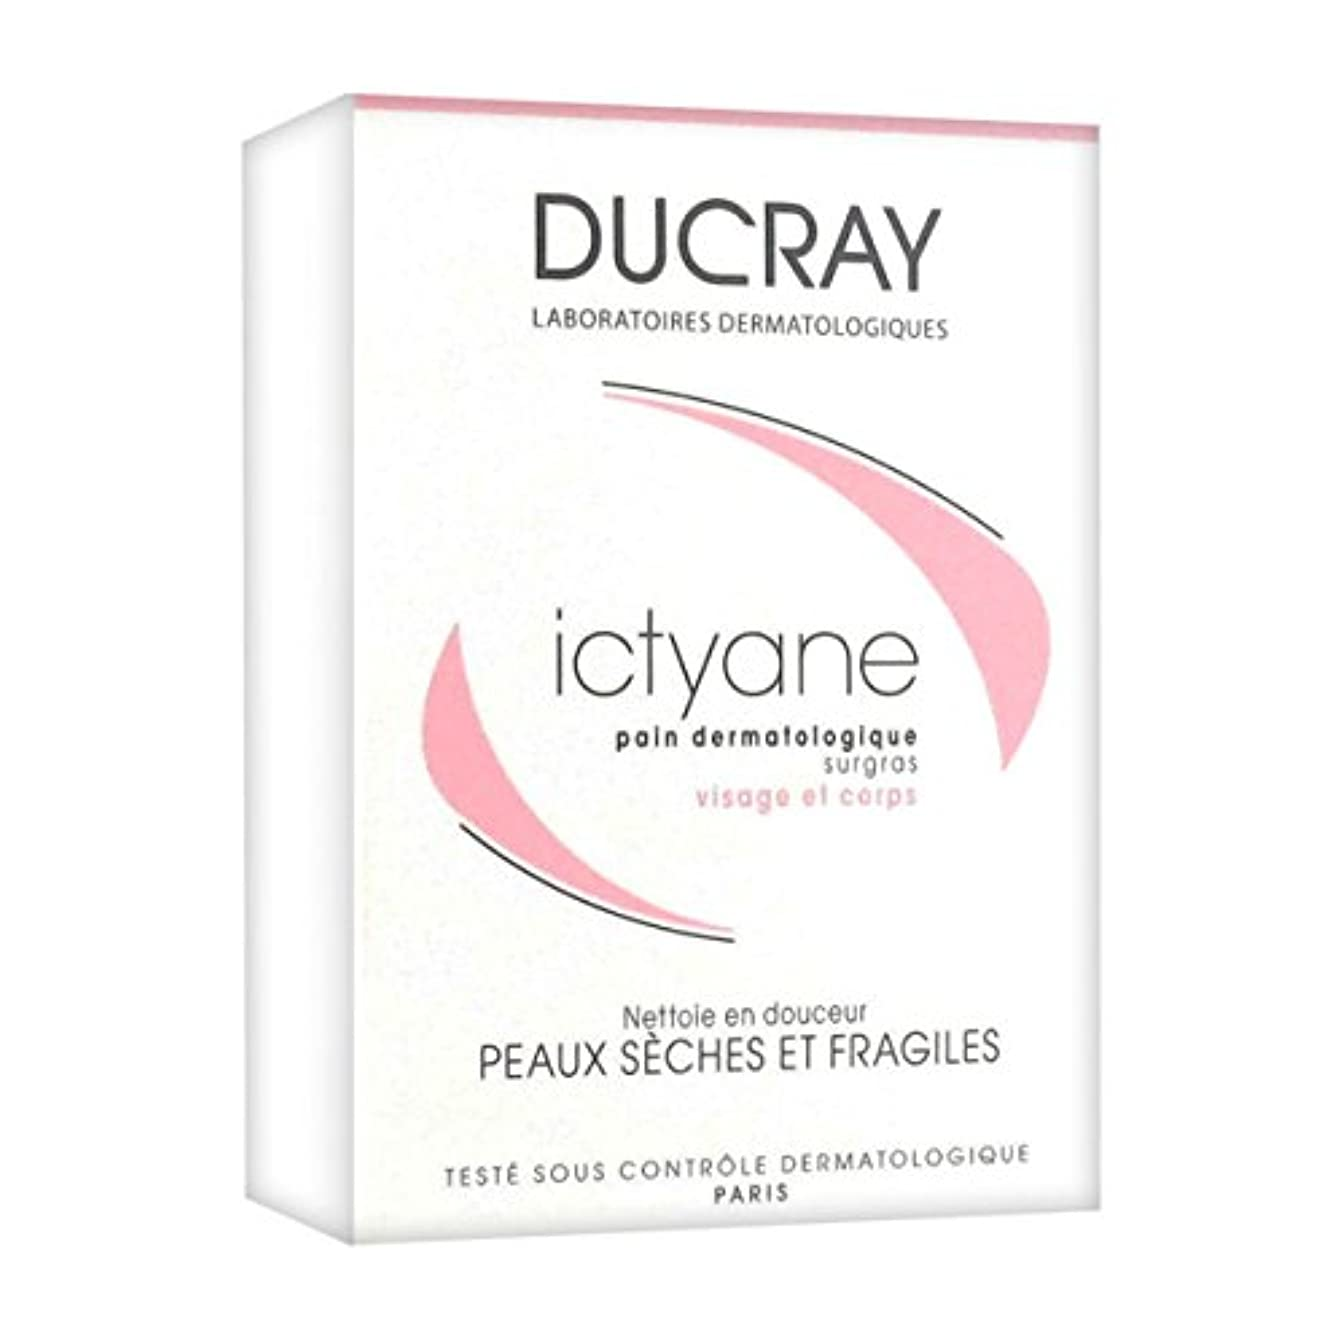 貫通活気づく公演Ducray Ictyane Extra-rich Dermatological Soap 100gr [並行輸入品]